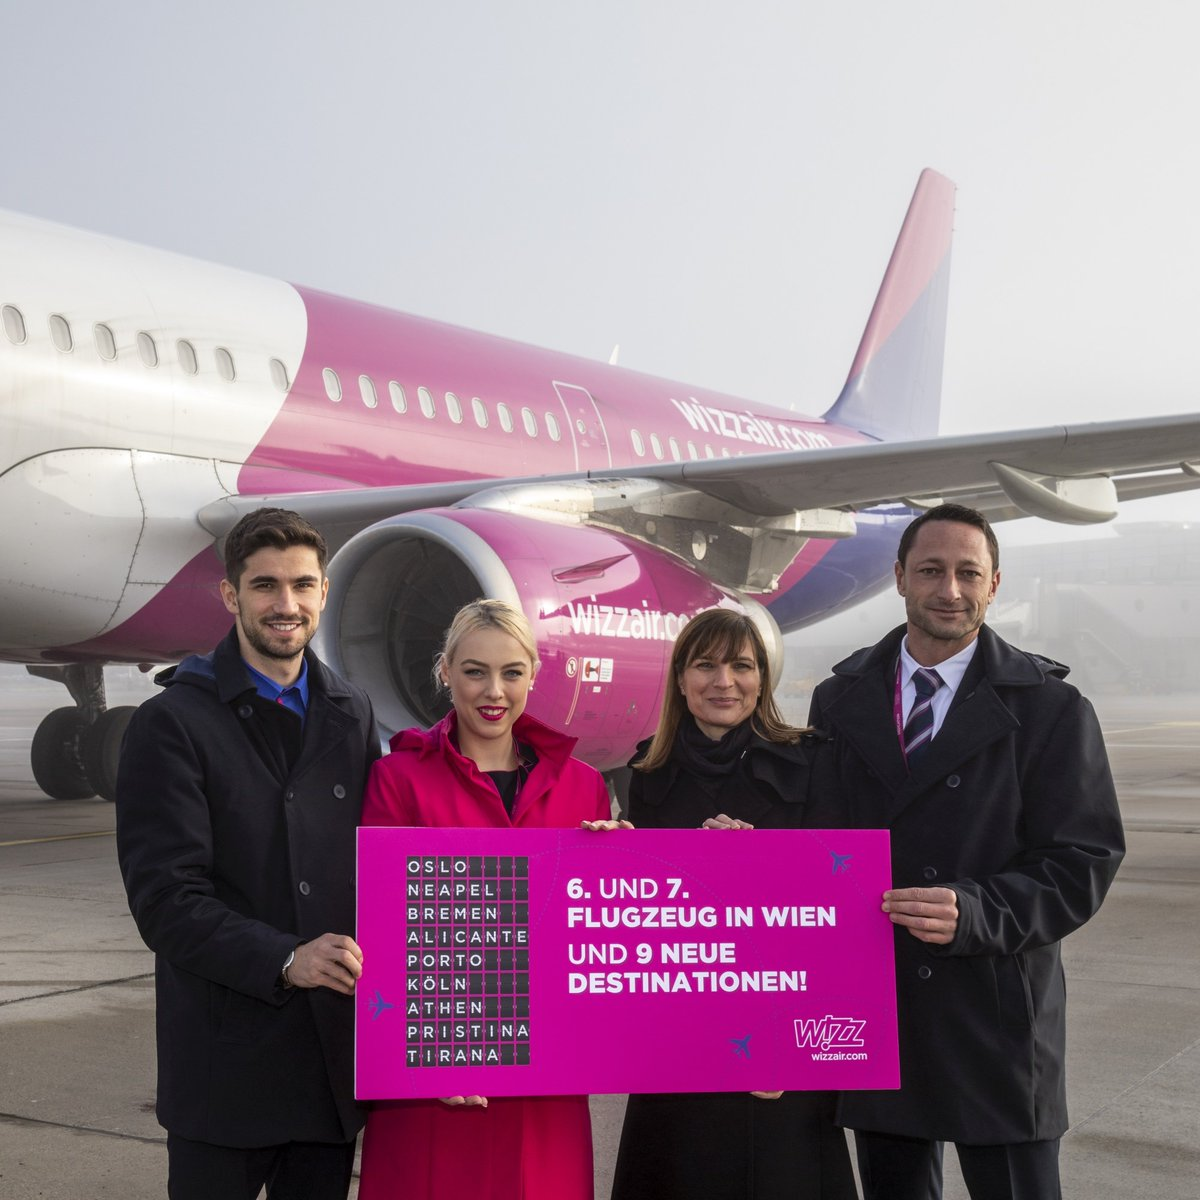 Wizz Air On Twitter We Re Celebrating The Arrival Of The 7th Aircraft To Our Vienna Fleet Bringing Fantastic New Travel Opportunities To The Central European Region With The Recently Joined Airbus A321